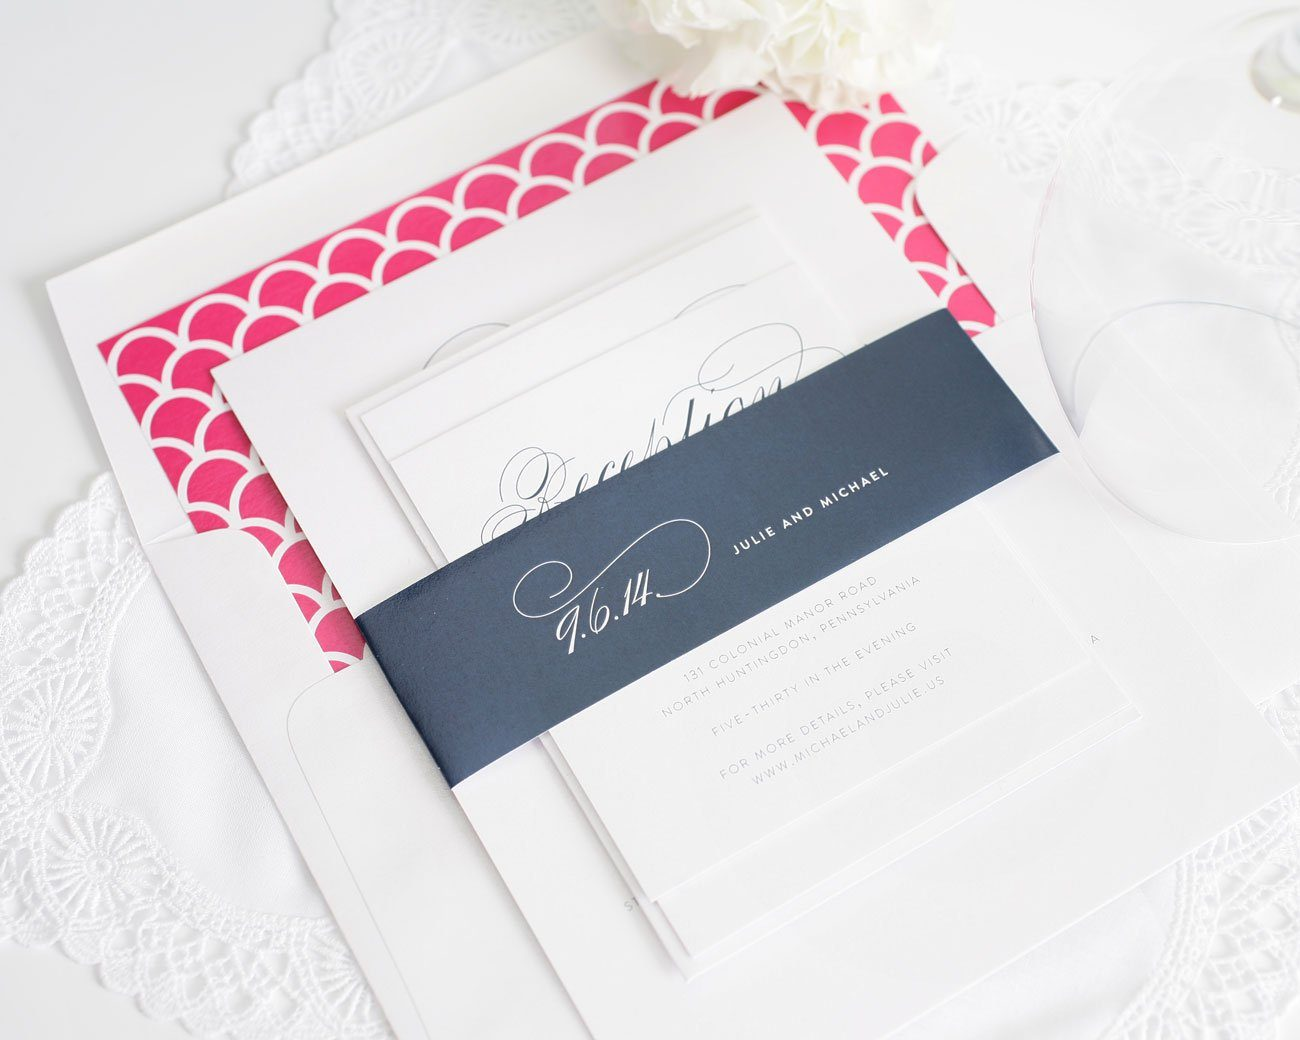 Elegant wedding invitations in pink and navy